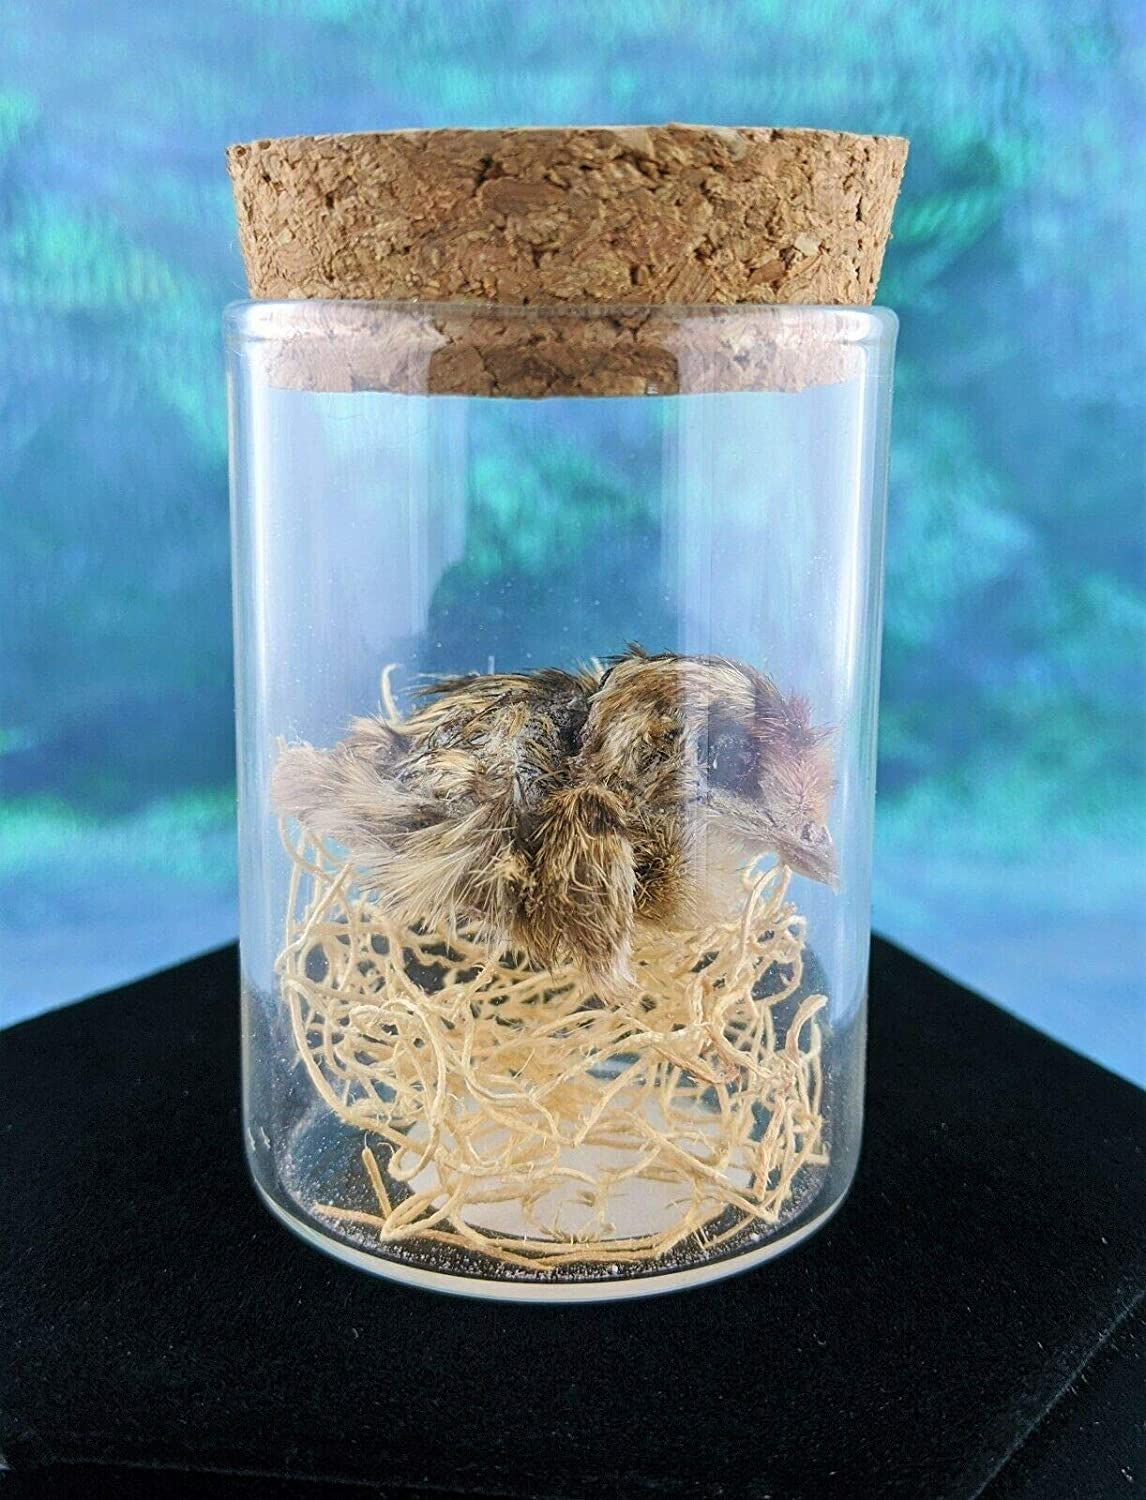 i12c  Taxidermy Mummified Quail Chick showcased in glass display bottle specimen collectible curiosity cabinet